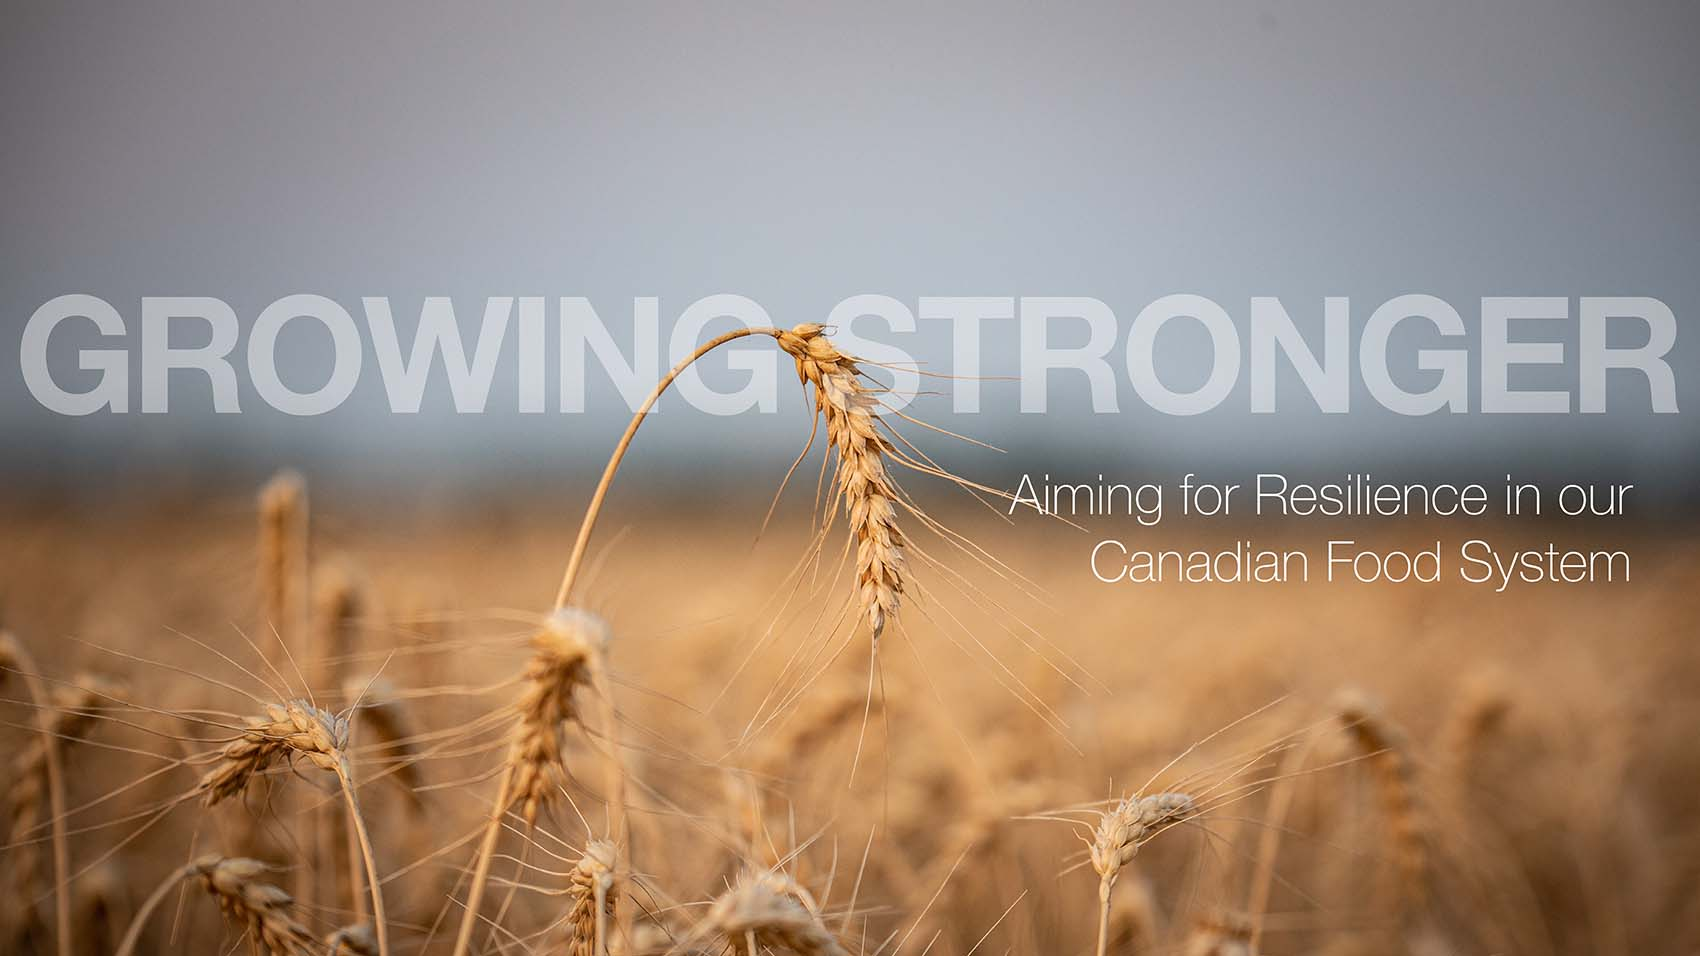 """Wheat field with text reading """"Growing Stronger; Aiming for Resilience in our Canadian Food System"""""""